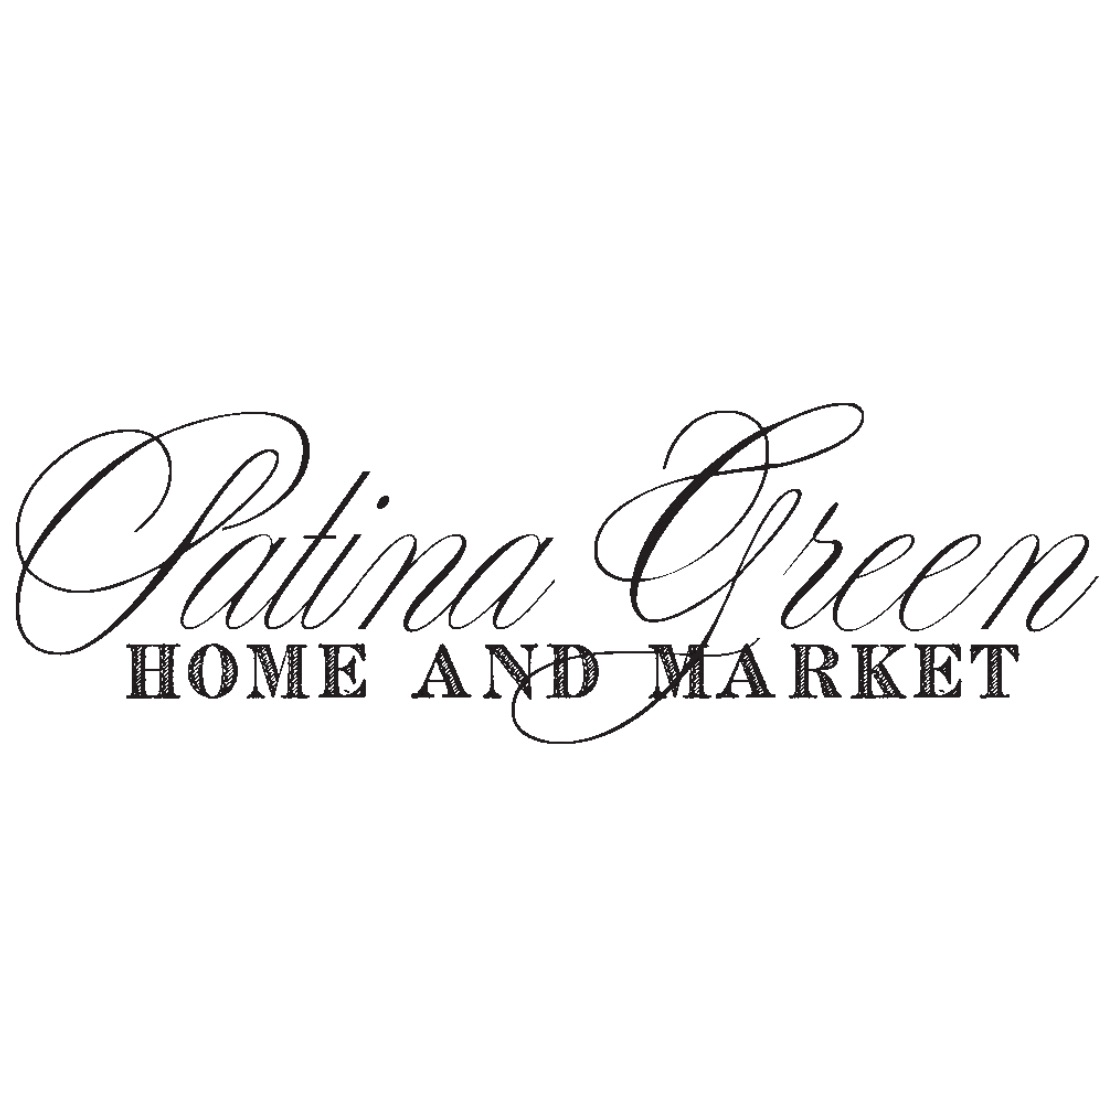 Patina Green Home & Market, Downtown McKinney, Texas